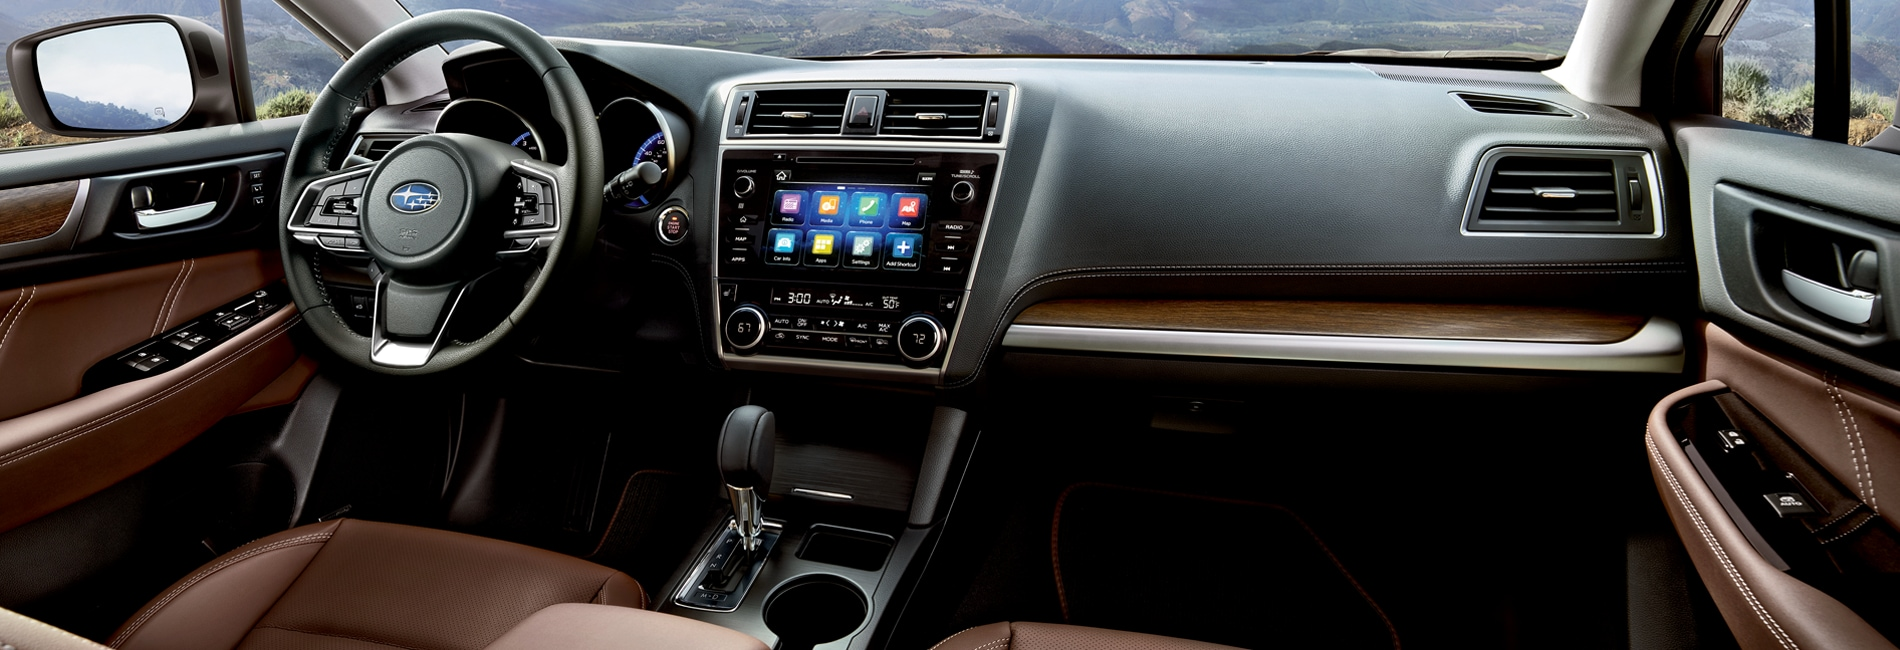 2019 Subaru Outback Interior Features